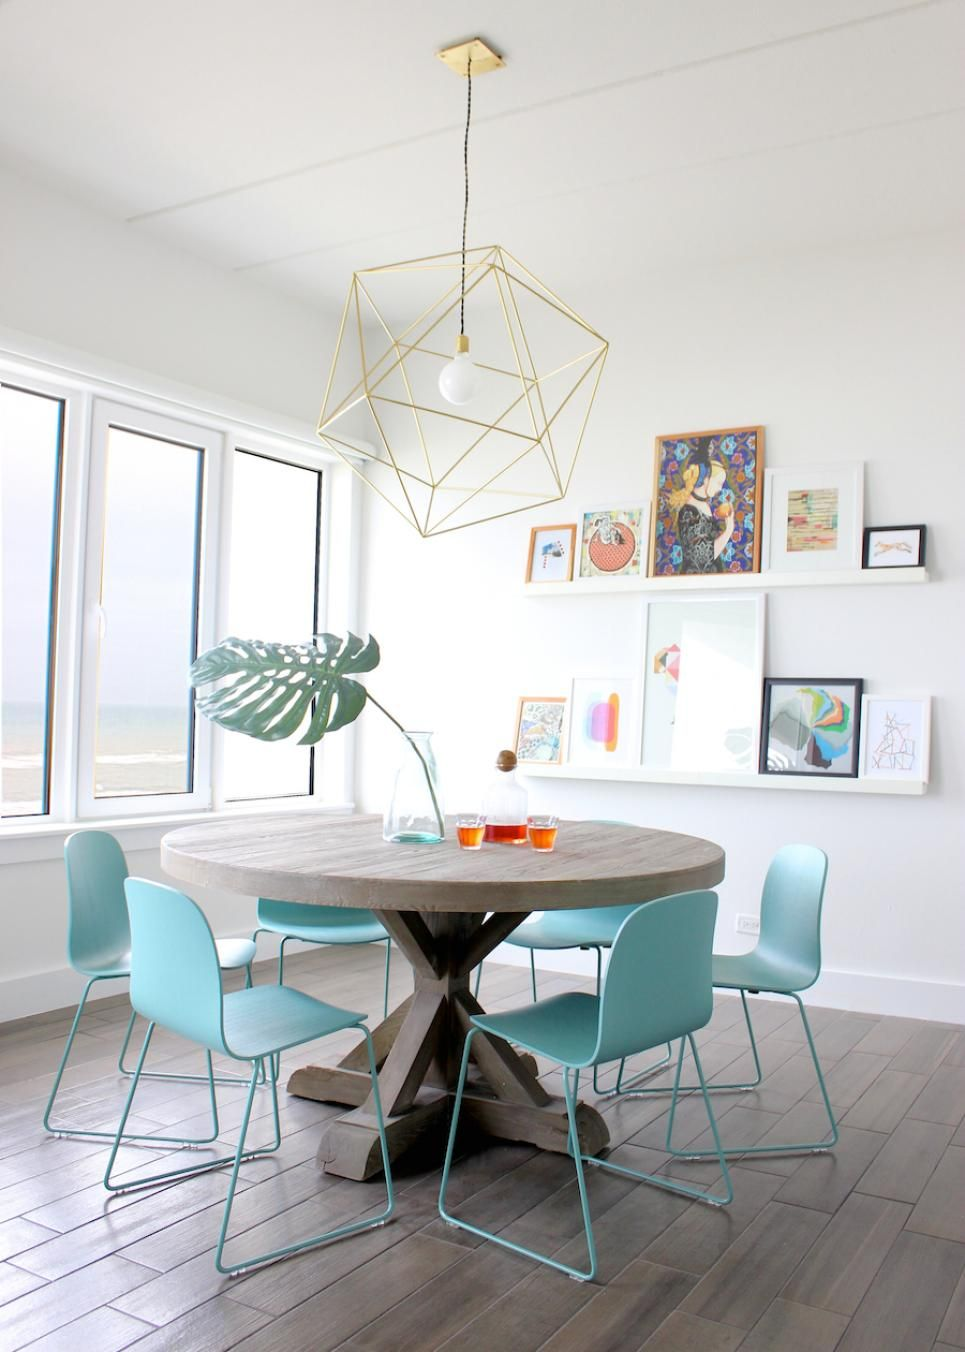 A round wooden dining table softens the